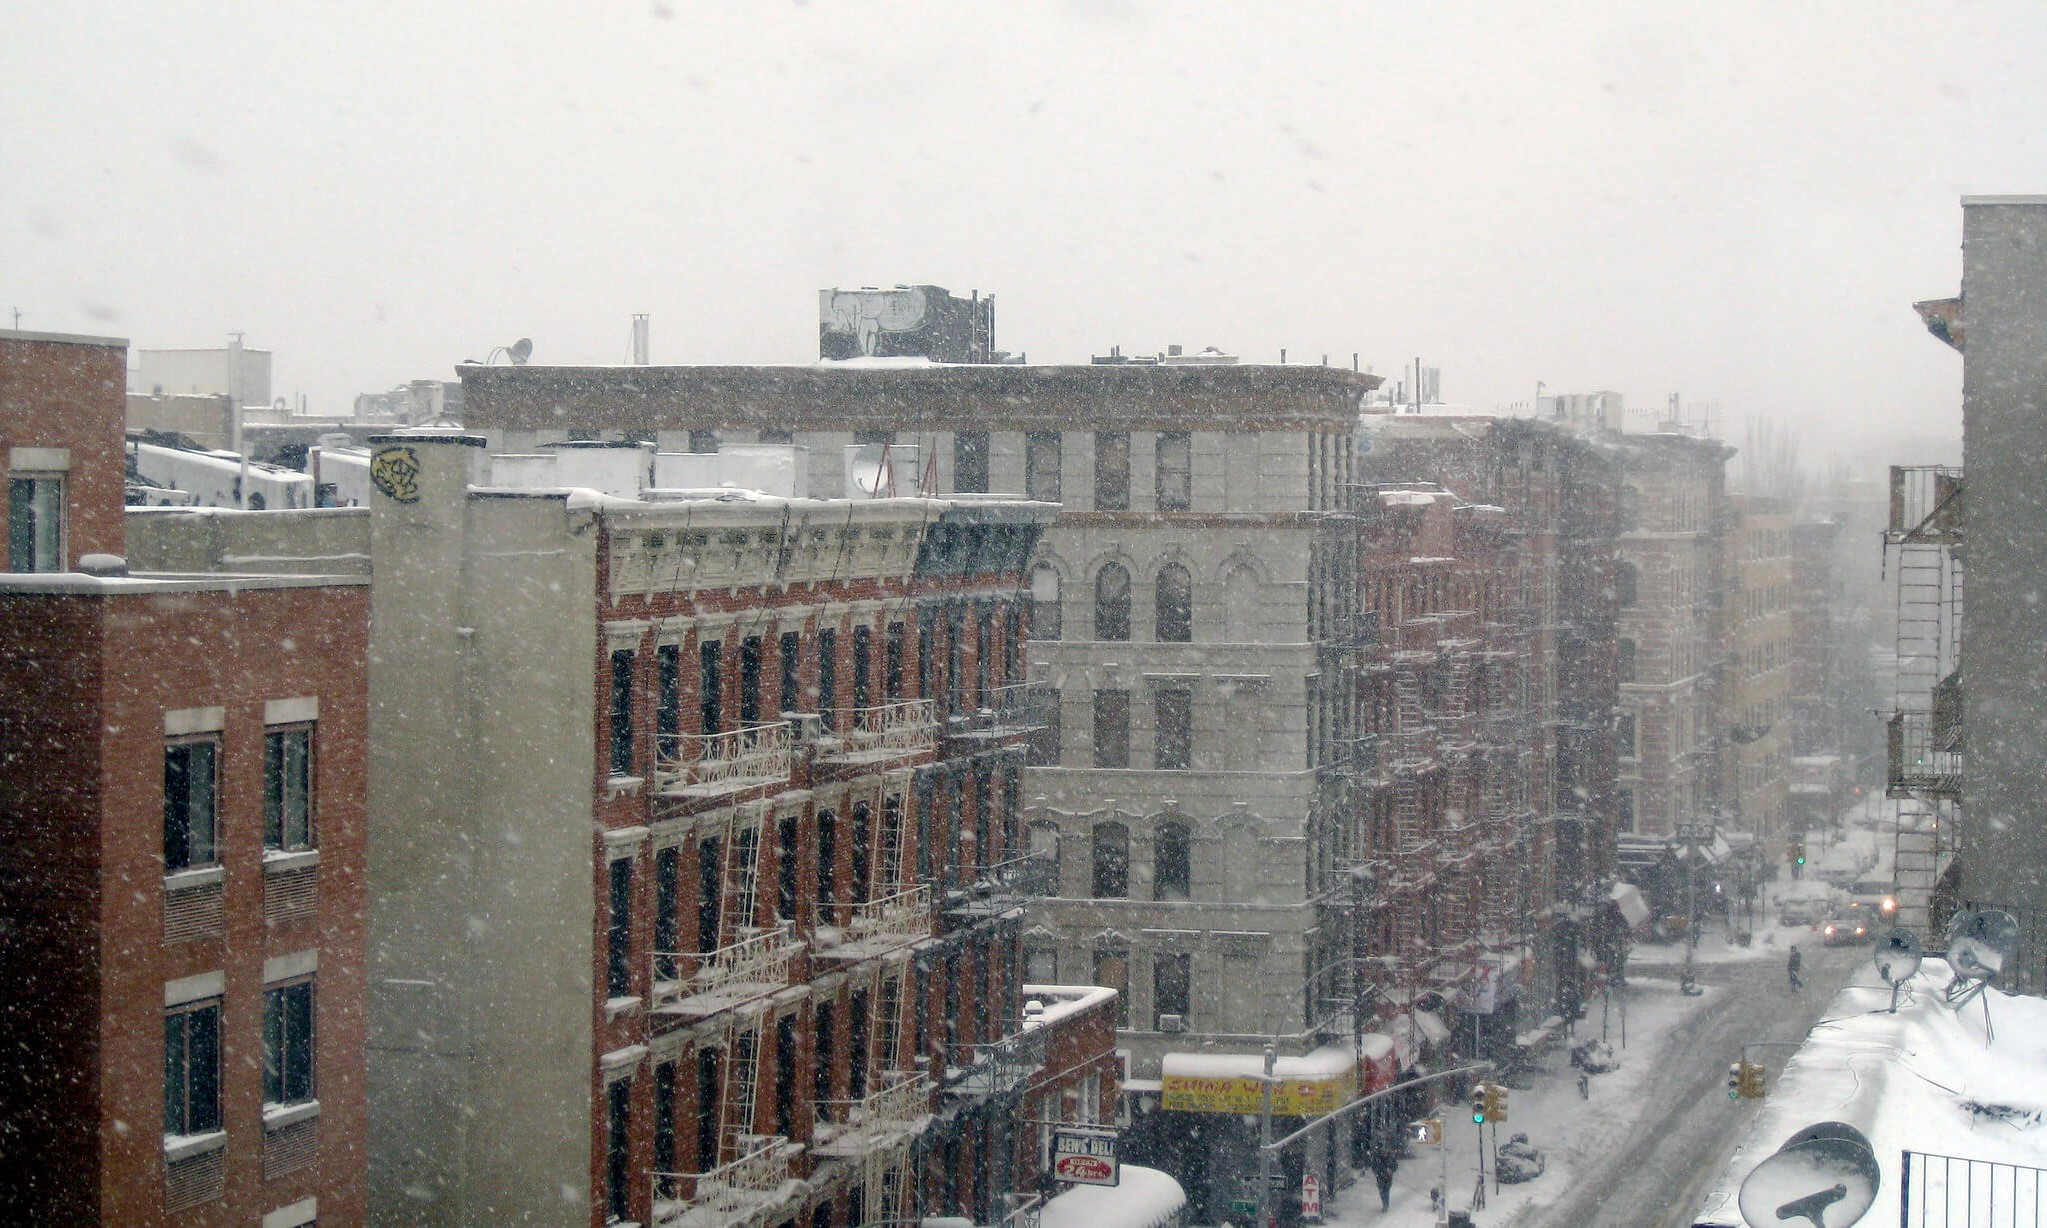 Alphabet city apartment buildings caught in a blizzard